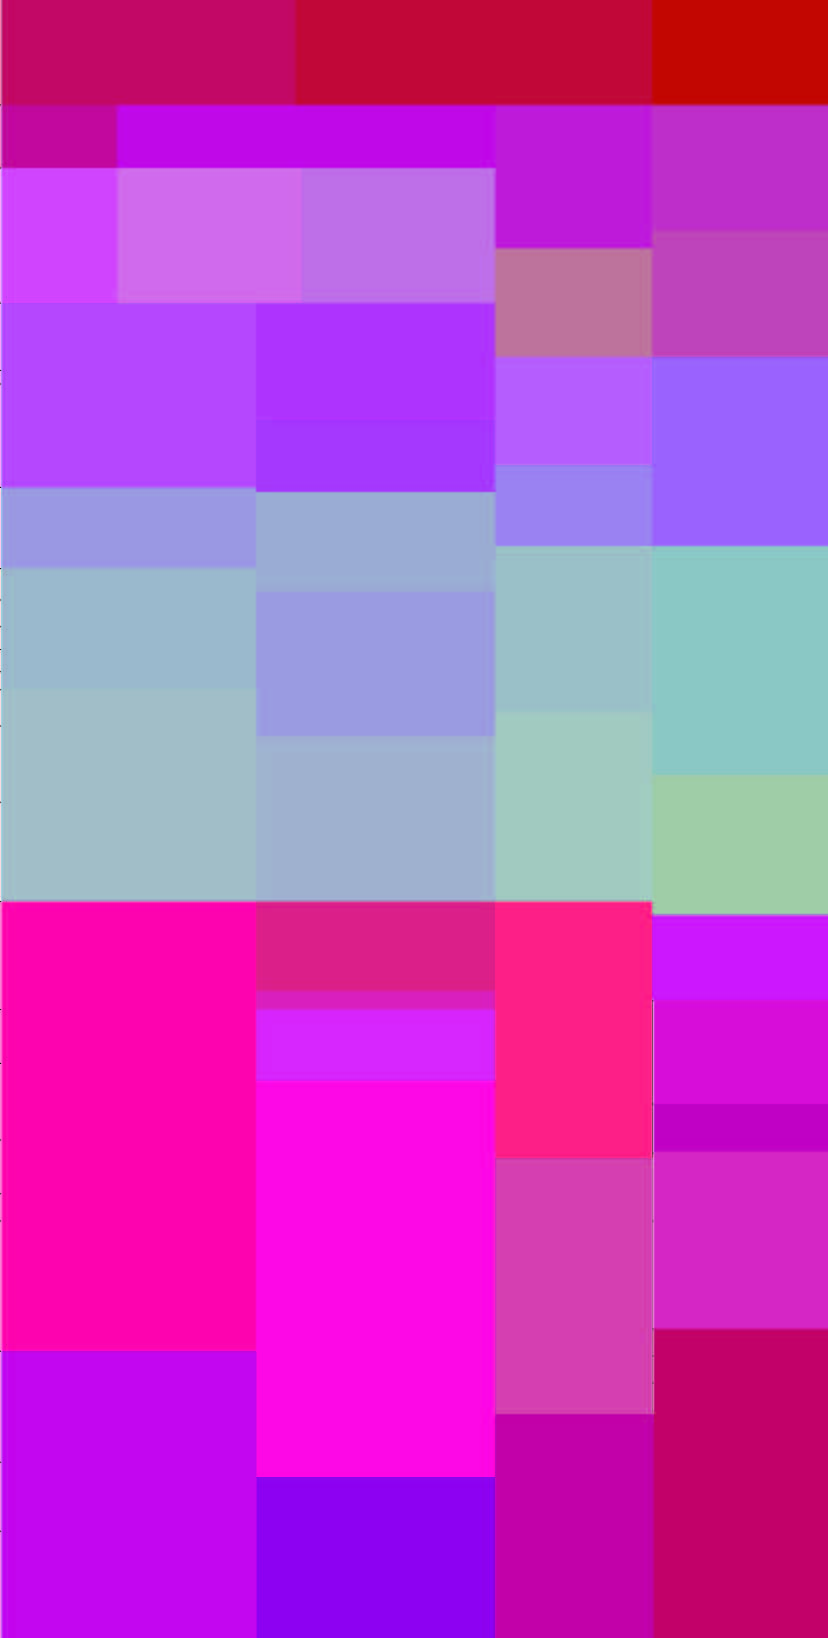 rs_fdn1111_sp10_nyt_color_low_39